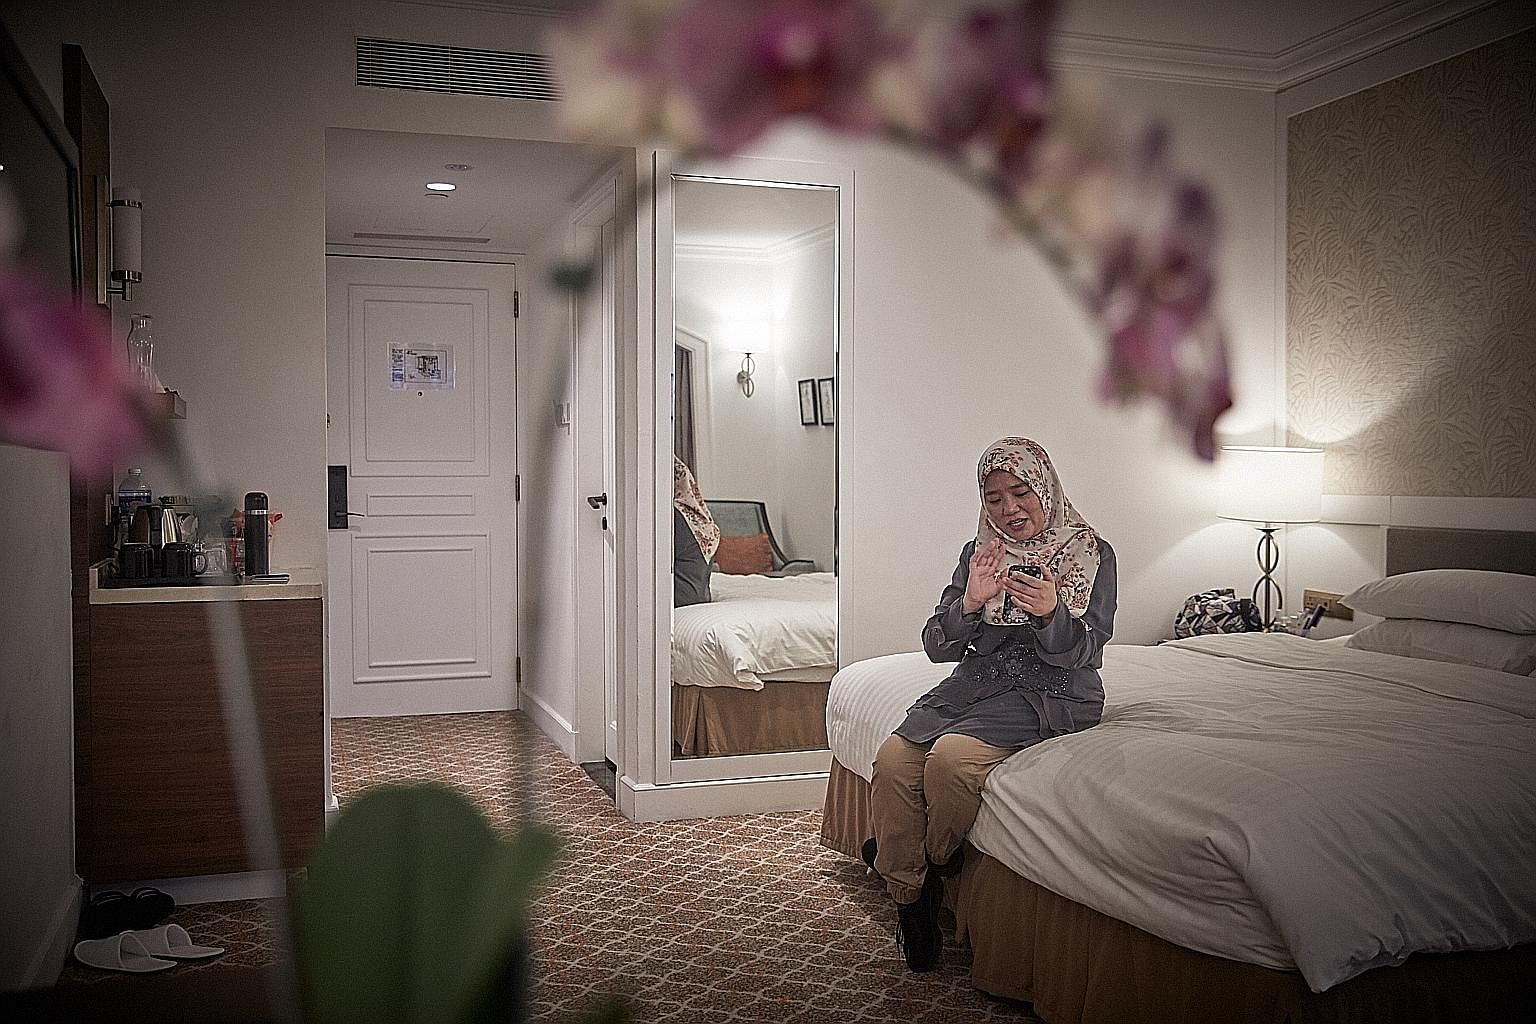 """""""When I handed my passport to (the) immigration officer, my hand was shaking,"""" recalled Madam Nelly Hamdin, 45, as she recounted the day - March 17, a day before the lockdown - when she left her family behind in Malaysia. """"My youngest son held onto m"""